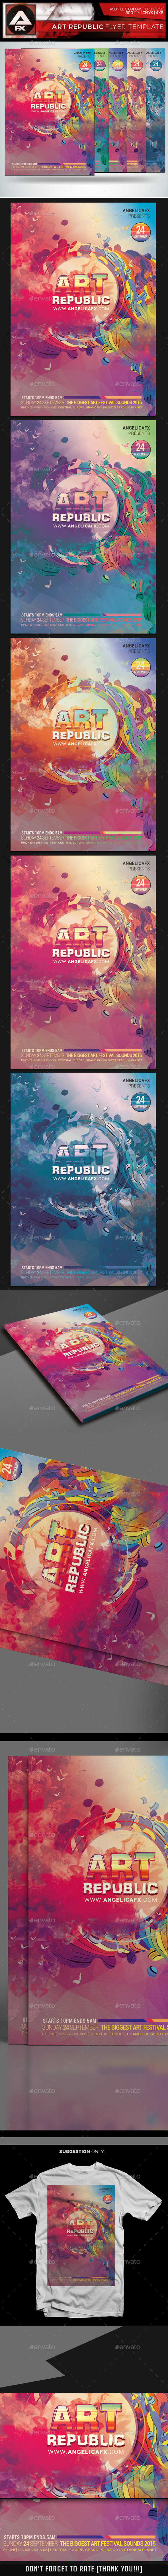 Art Republic Flyer Template - Events Flyers